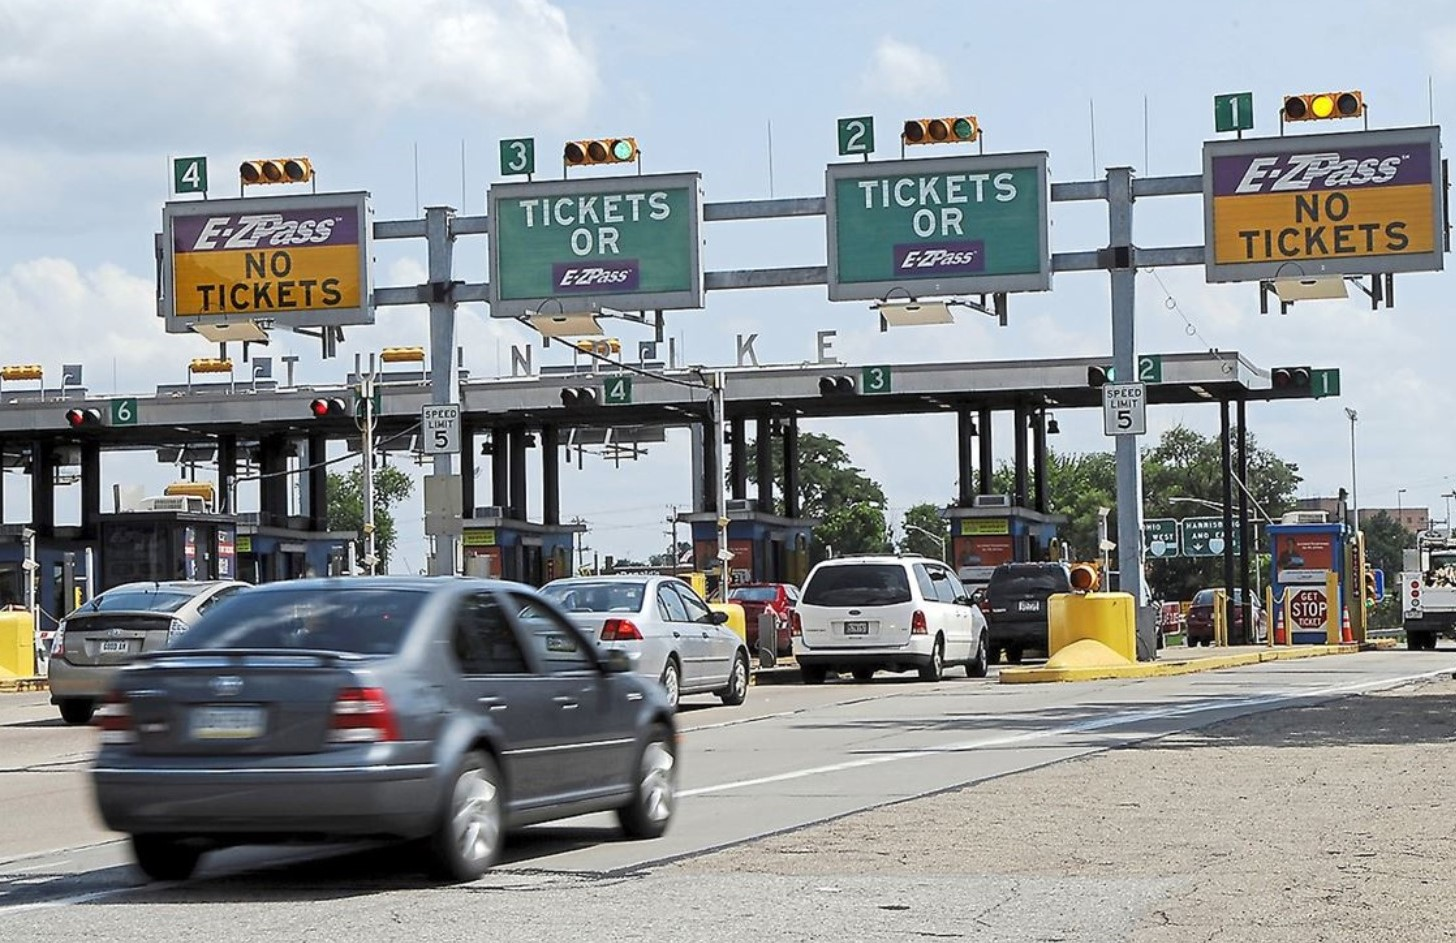 Pennsylvania Turnpike to file criminal charges in effort to collect $17 Million in unpaid tolls